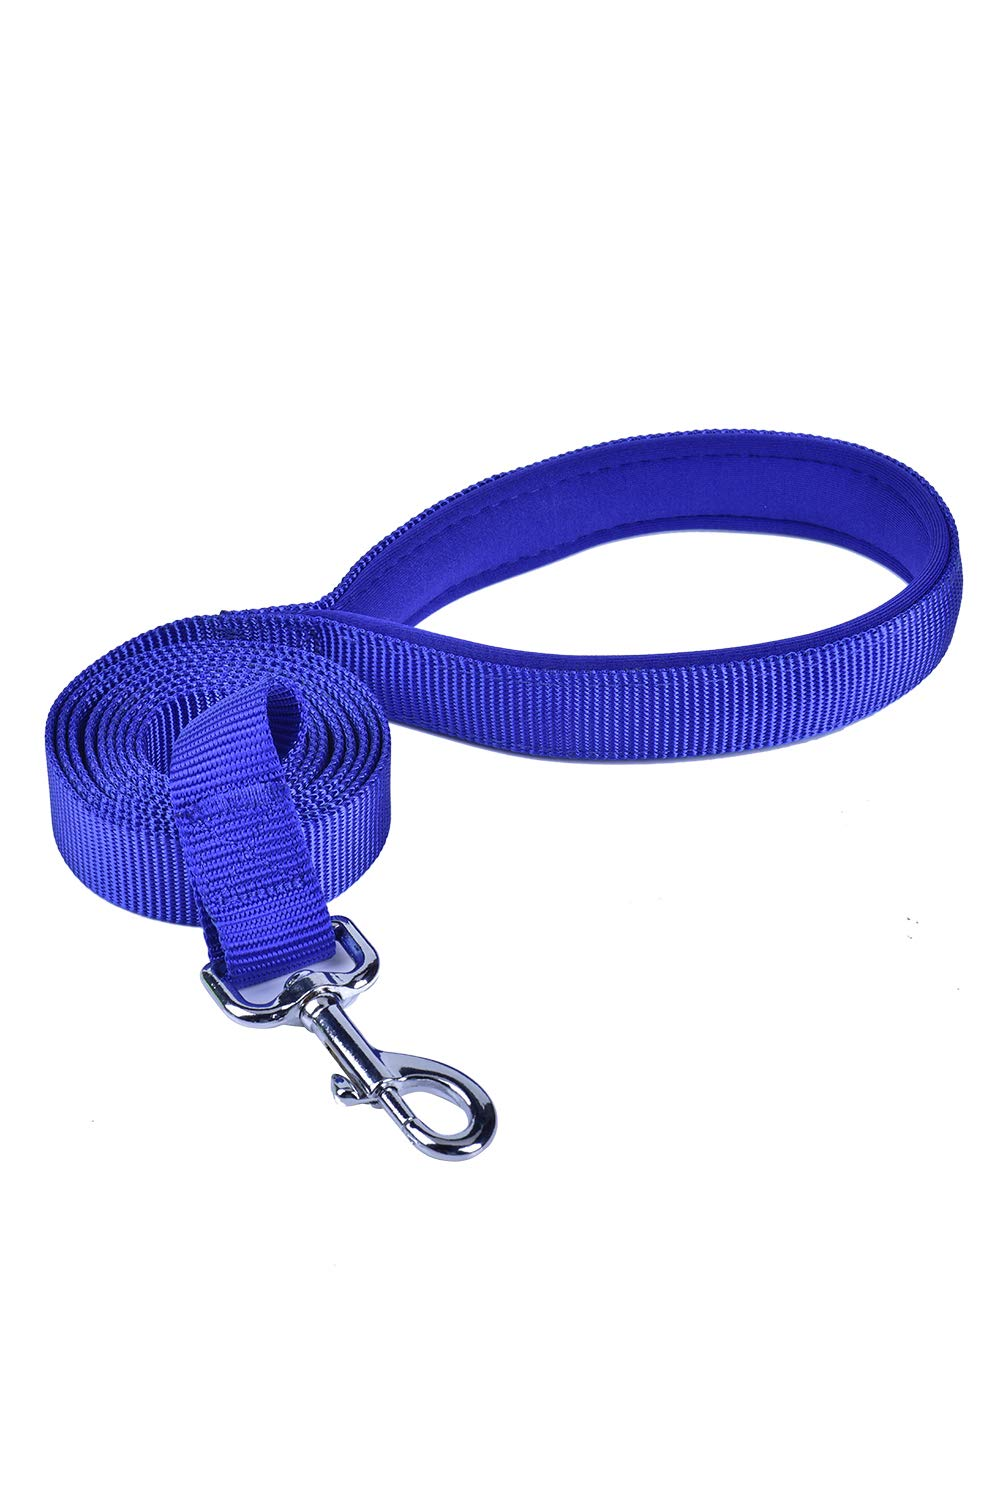 CtopoGo Nylon Dog Leash, with Padded Handles Dogs Leash, Strong and Durable Dog Pet Leashes Training,Walking Lead for Small to Large Dogs